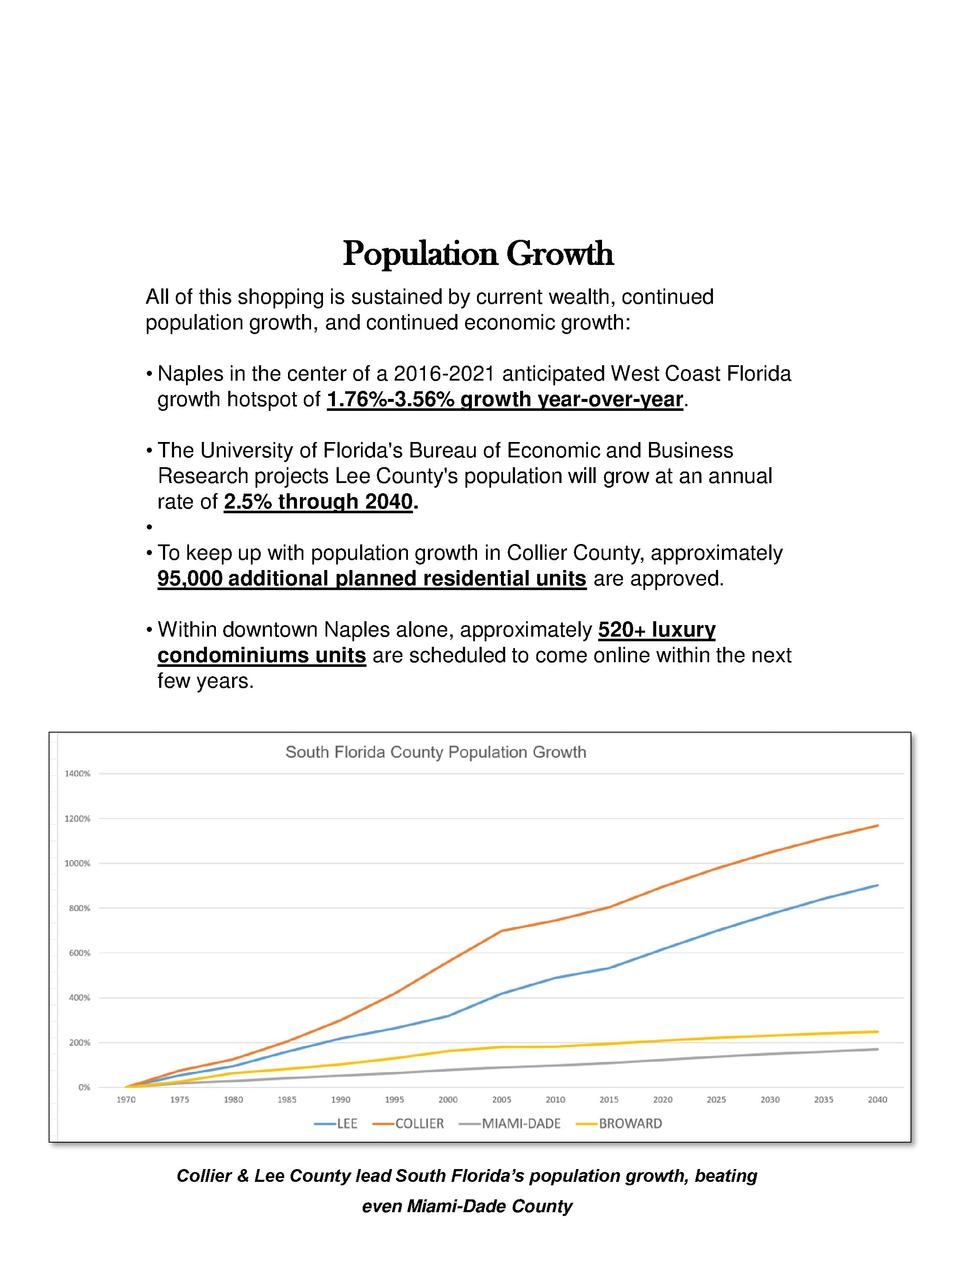 Population Growth All of this shopping is sustained by current wealth, continued population growth, and continued economic...